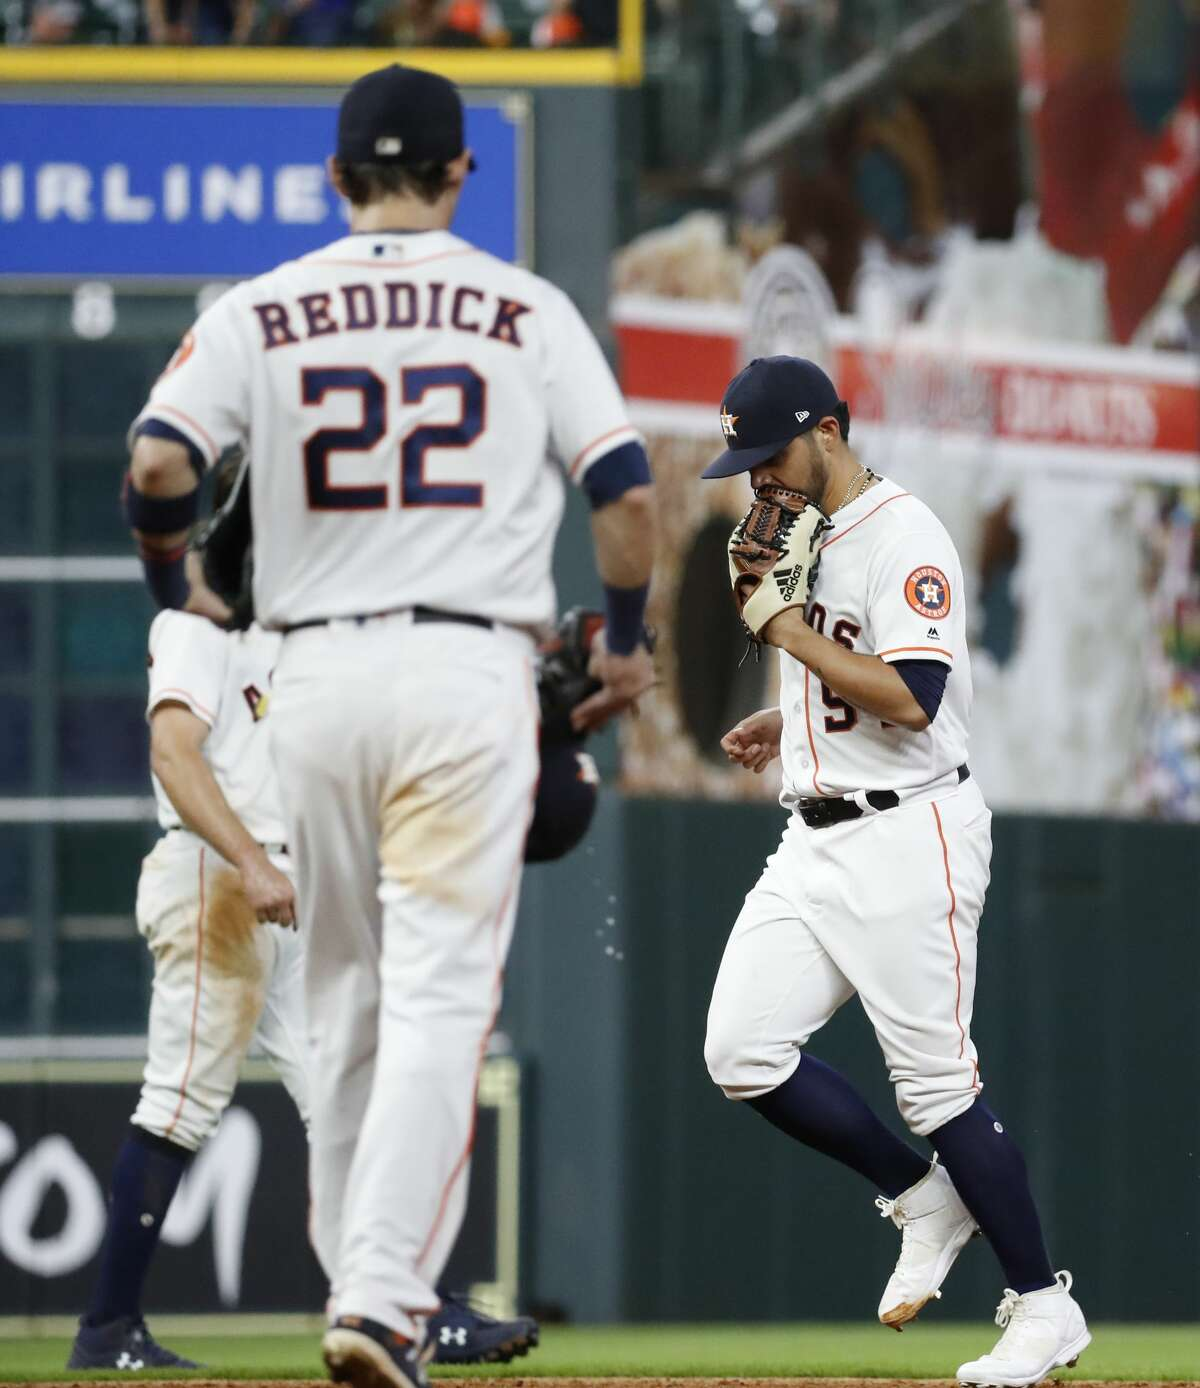 Houston Astros relief pitcher Roberto Osuna (54) runs out to the mound during the ninth inning of an MLB game at Minute Maid Park, Thursday, August 9, 2018, in Houston.